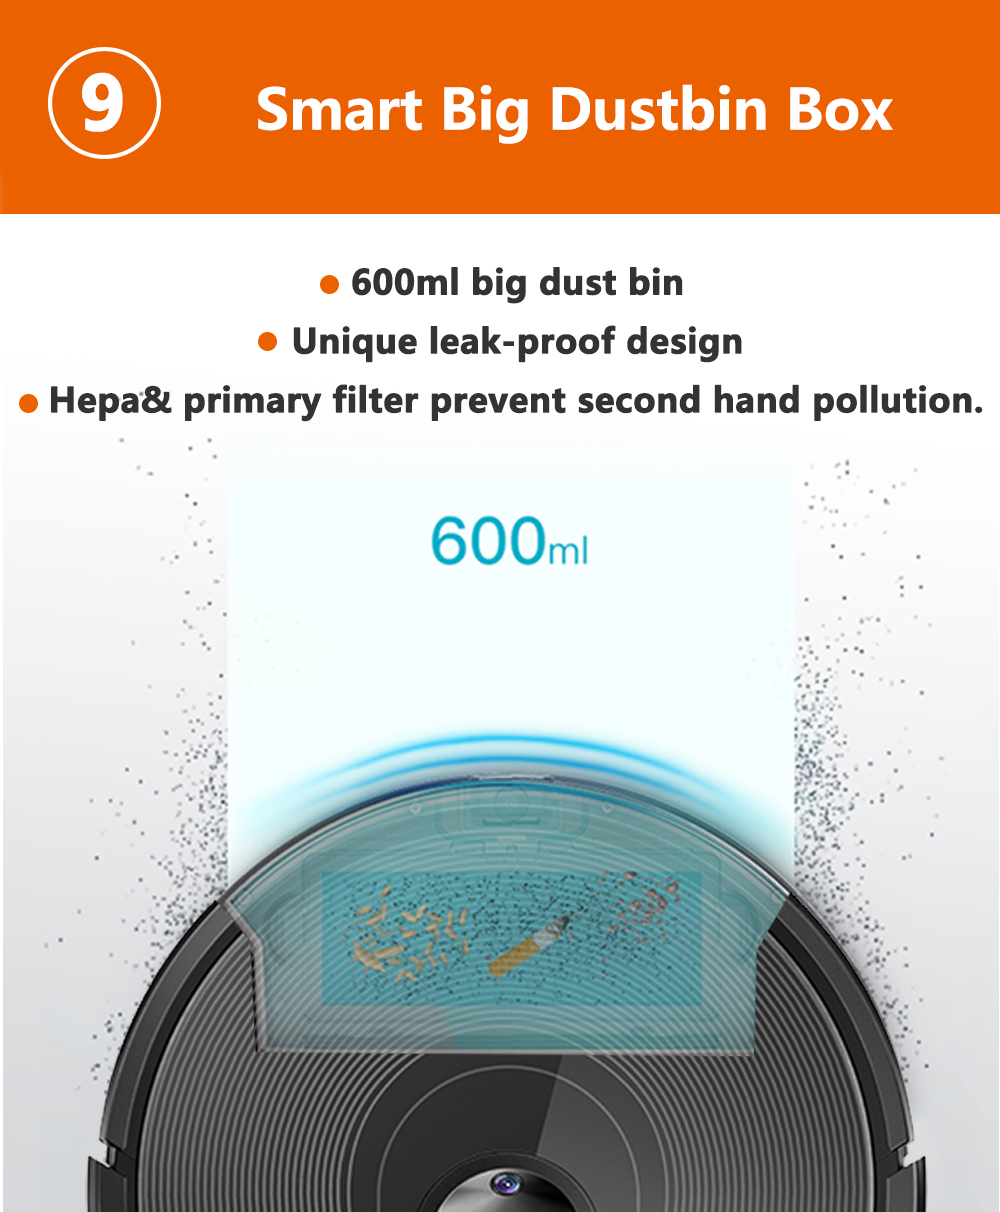 H15c261953b9f4e3ea8c79b218bf1d79b8 ABIR X6 Robot Vacuum Cleaner with Camera Navigation,WIFI APP controlled,Breakpoint Continue Cleaning,Draw Cleaning Area,Save Map